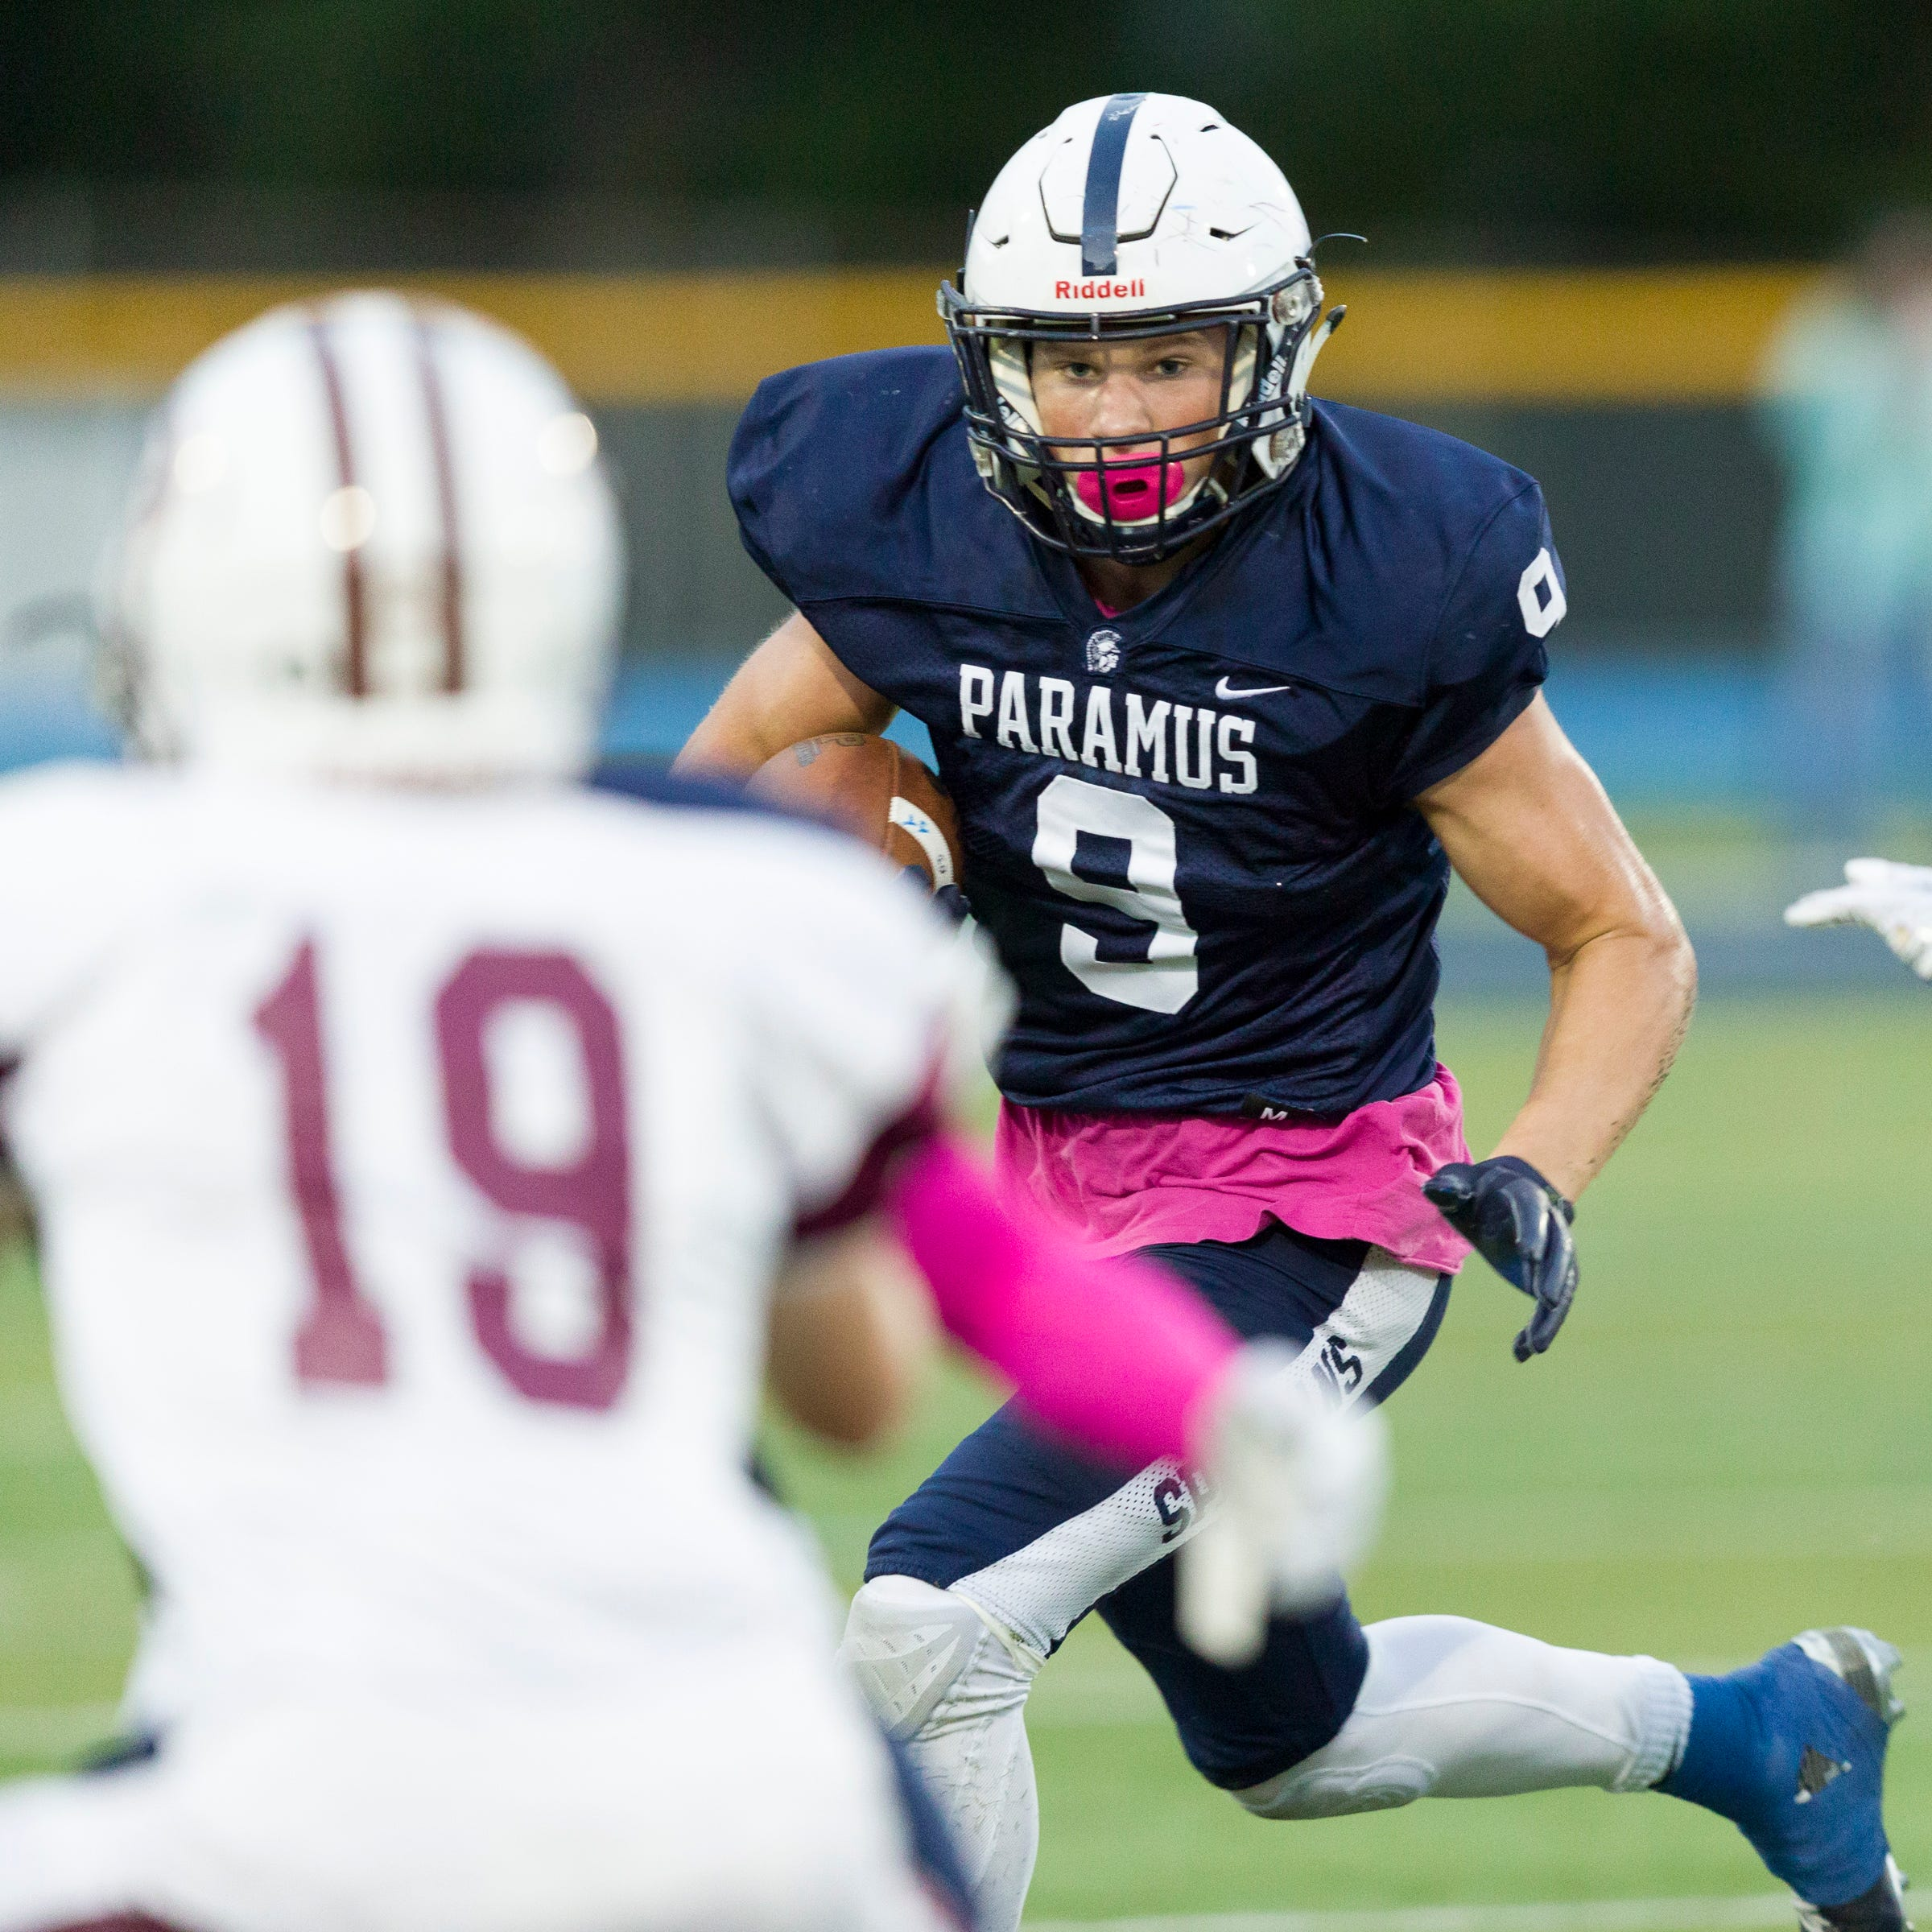 Paramus football's undefeated season rolls on with win at River Dell